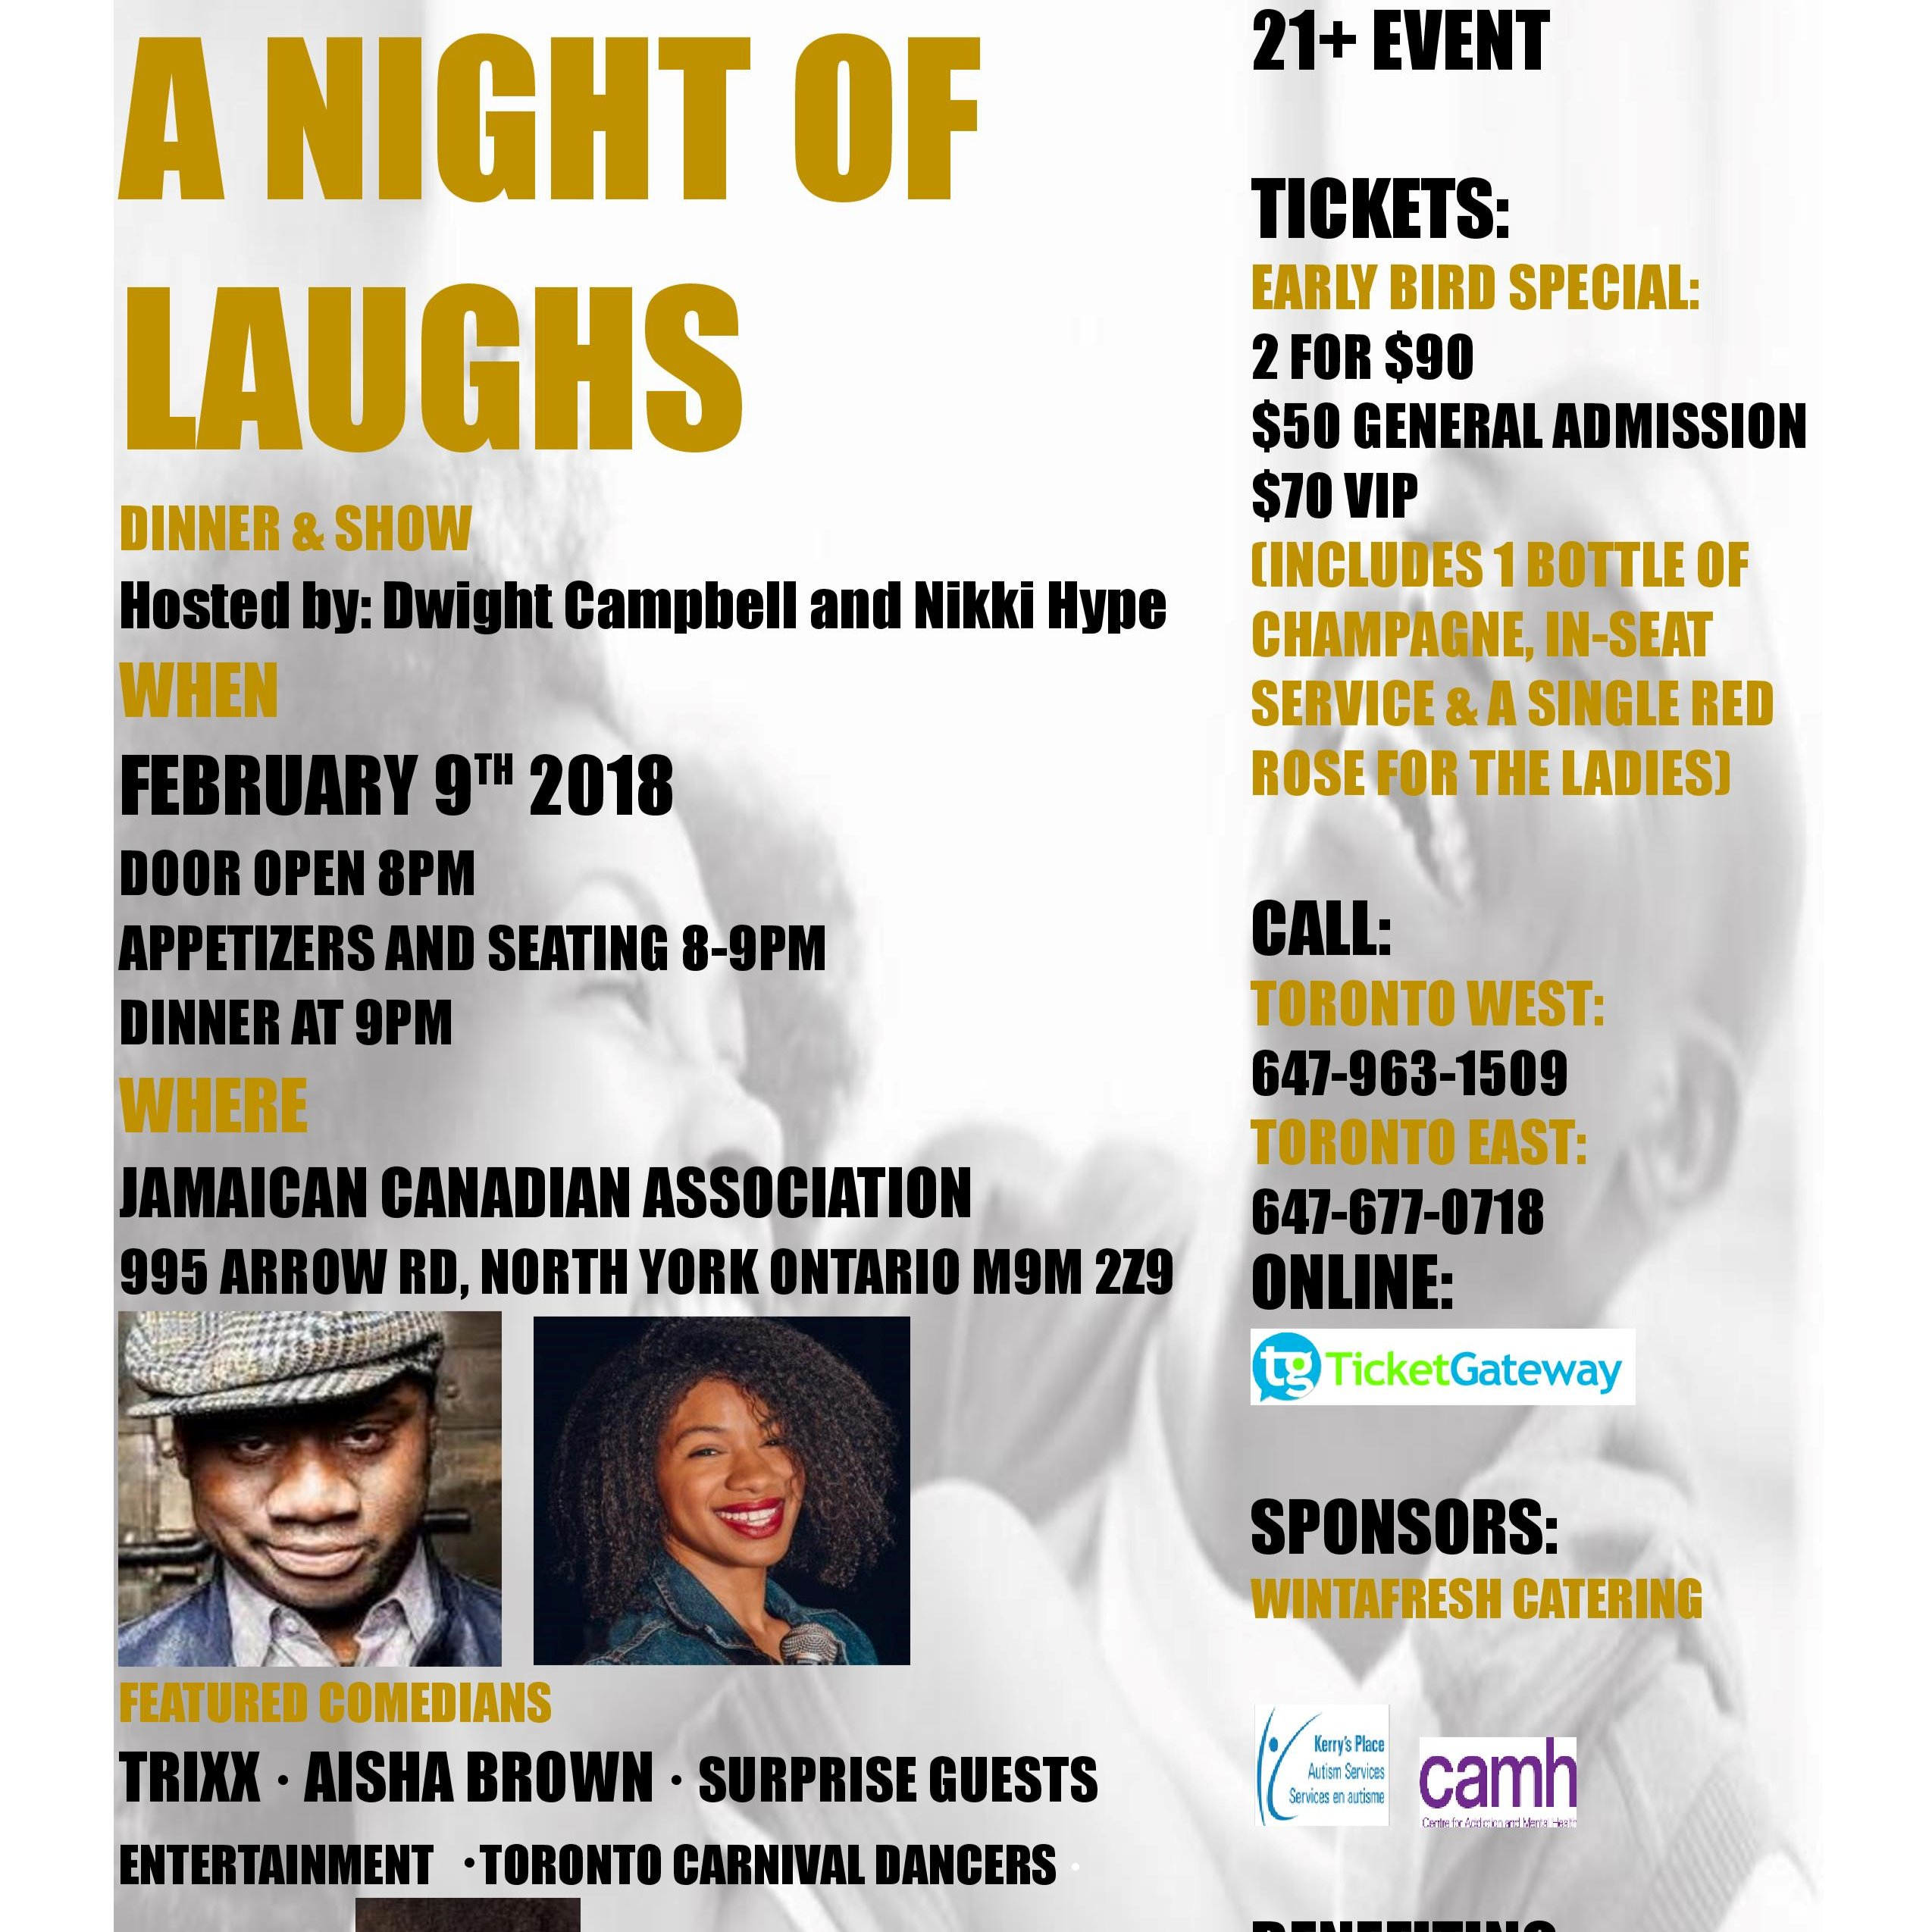 A NIGHT OF LAUGHS DINNER & SHOW